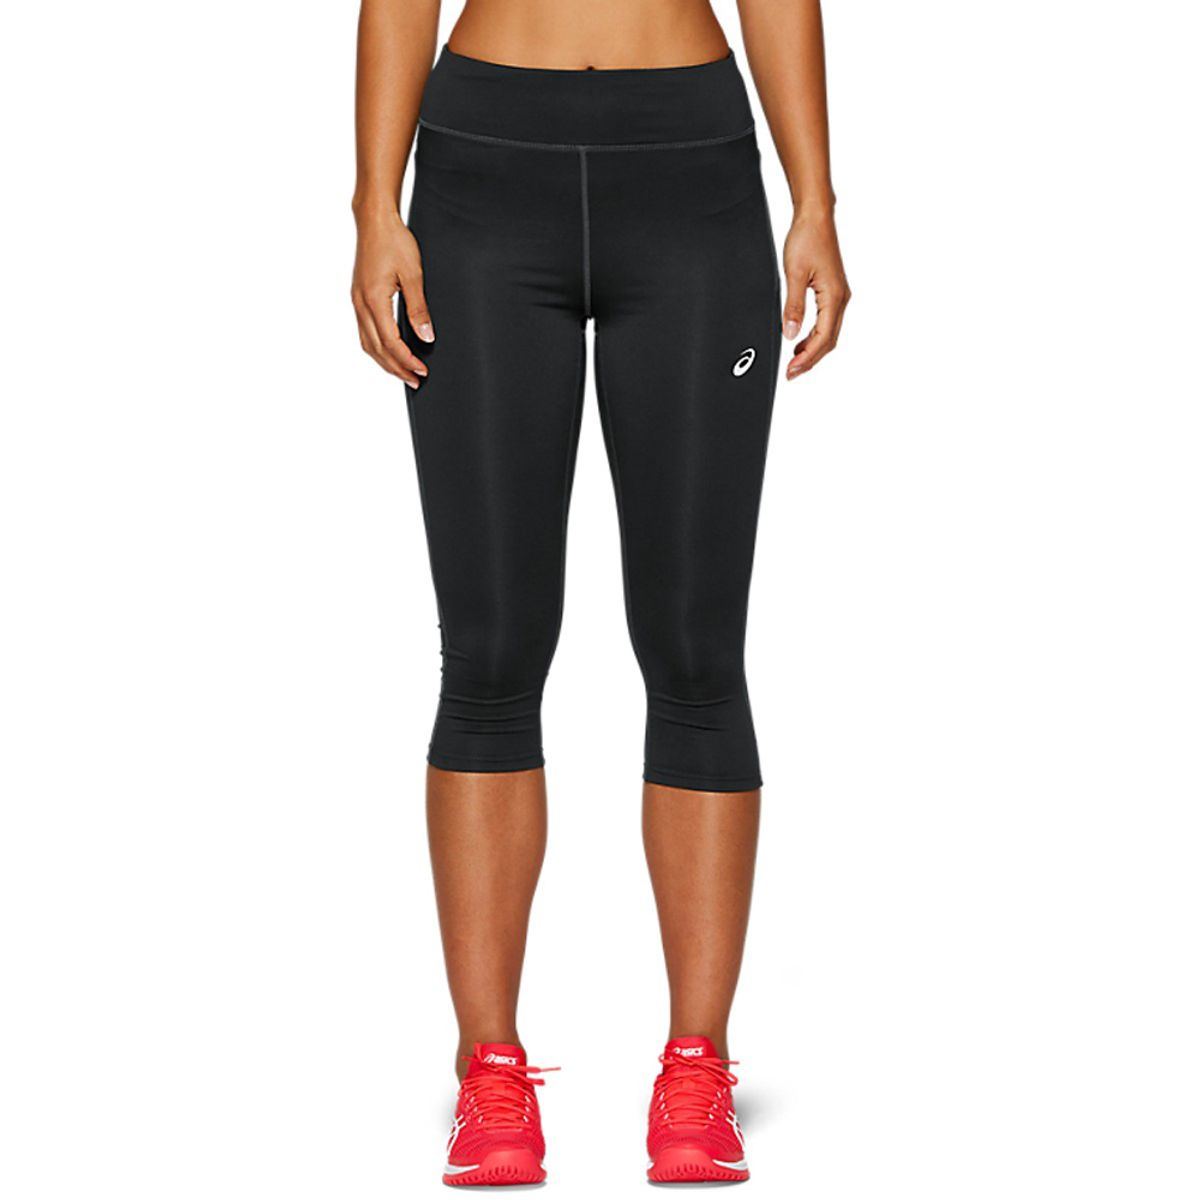 Calca-Legging-Asics-Tight---Feminino---Cinza